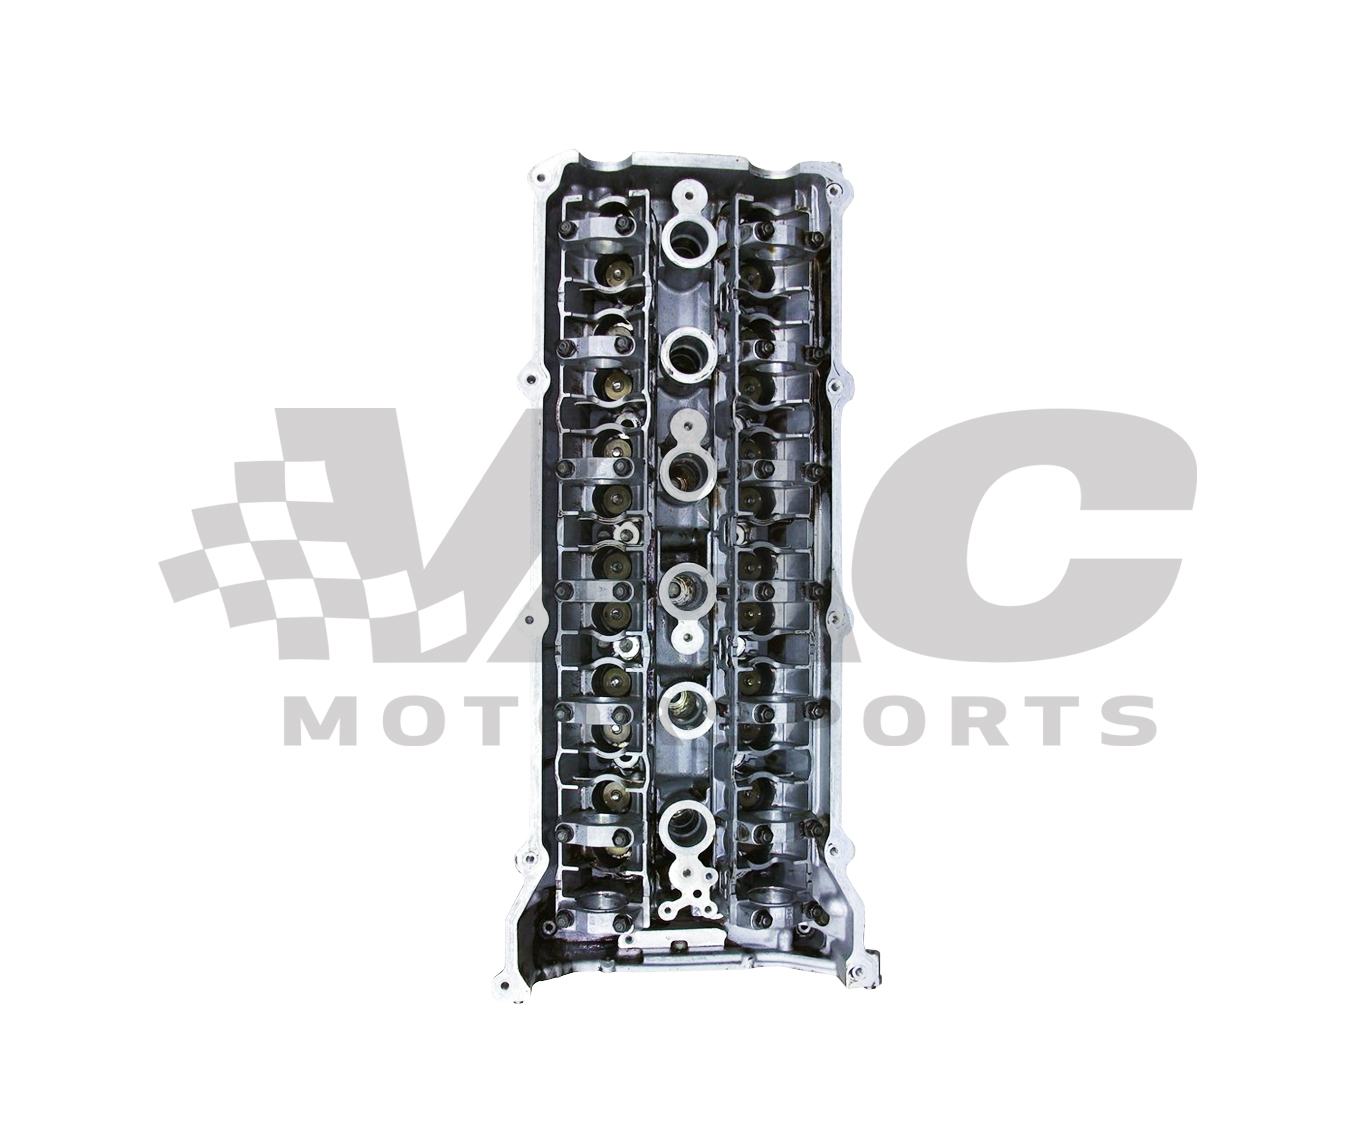 VAC Stage 2 Performance Cylinder Head (BMW M52TU M54) THUMBNAIL